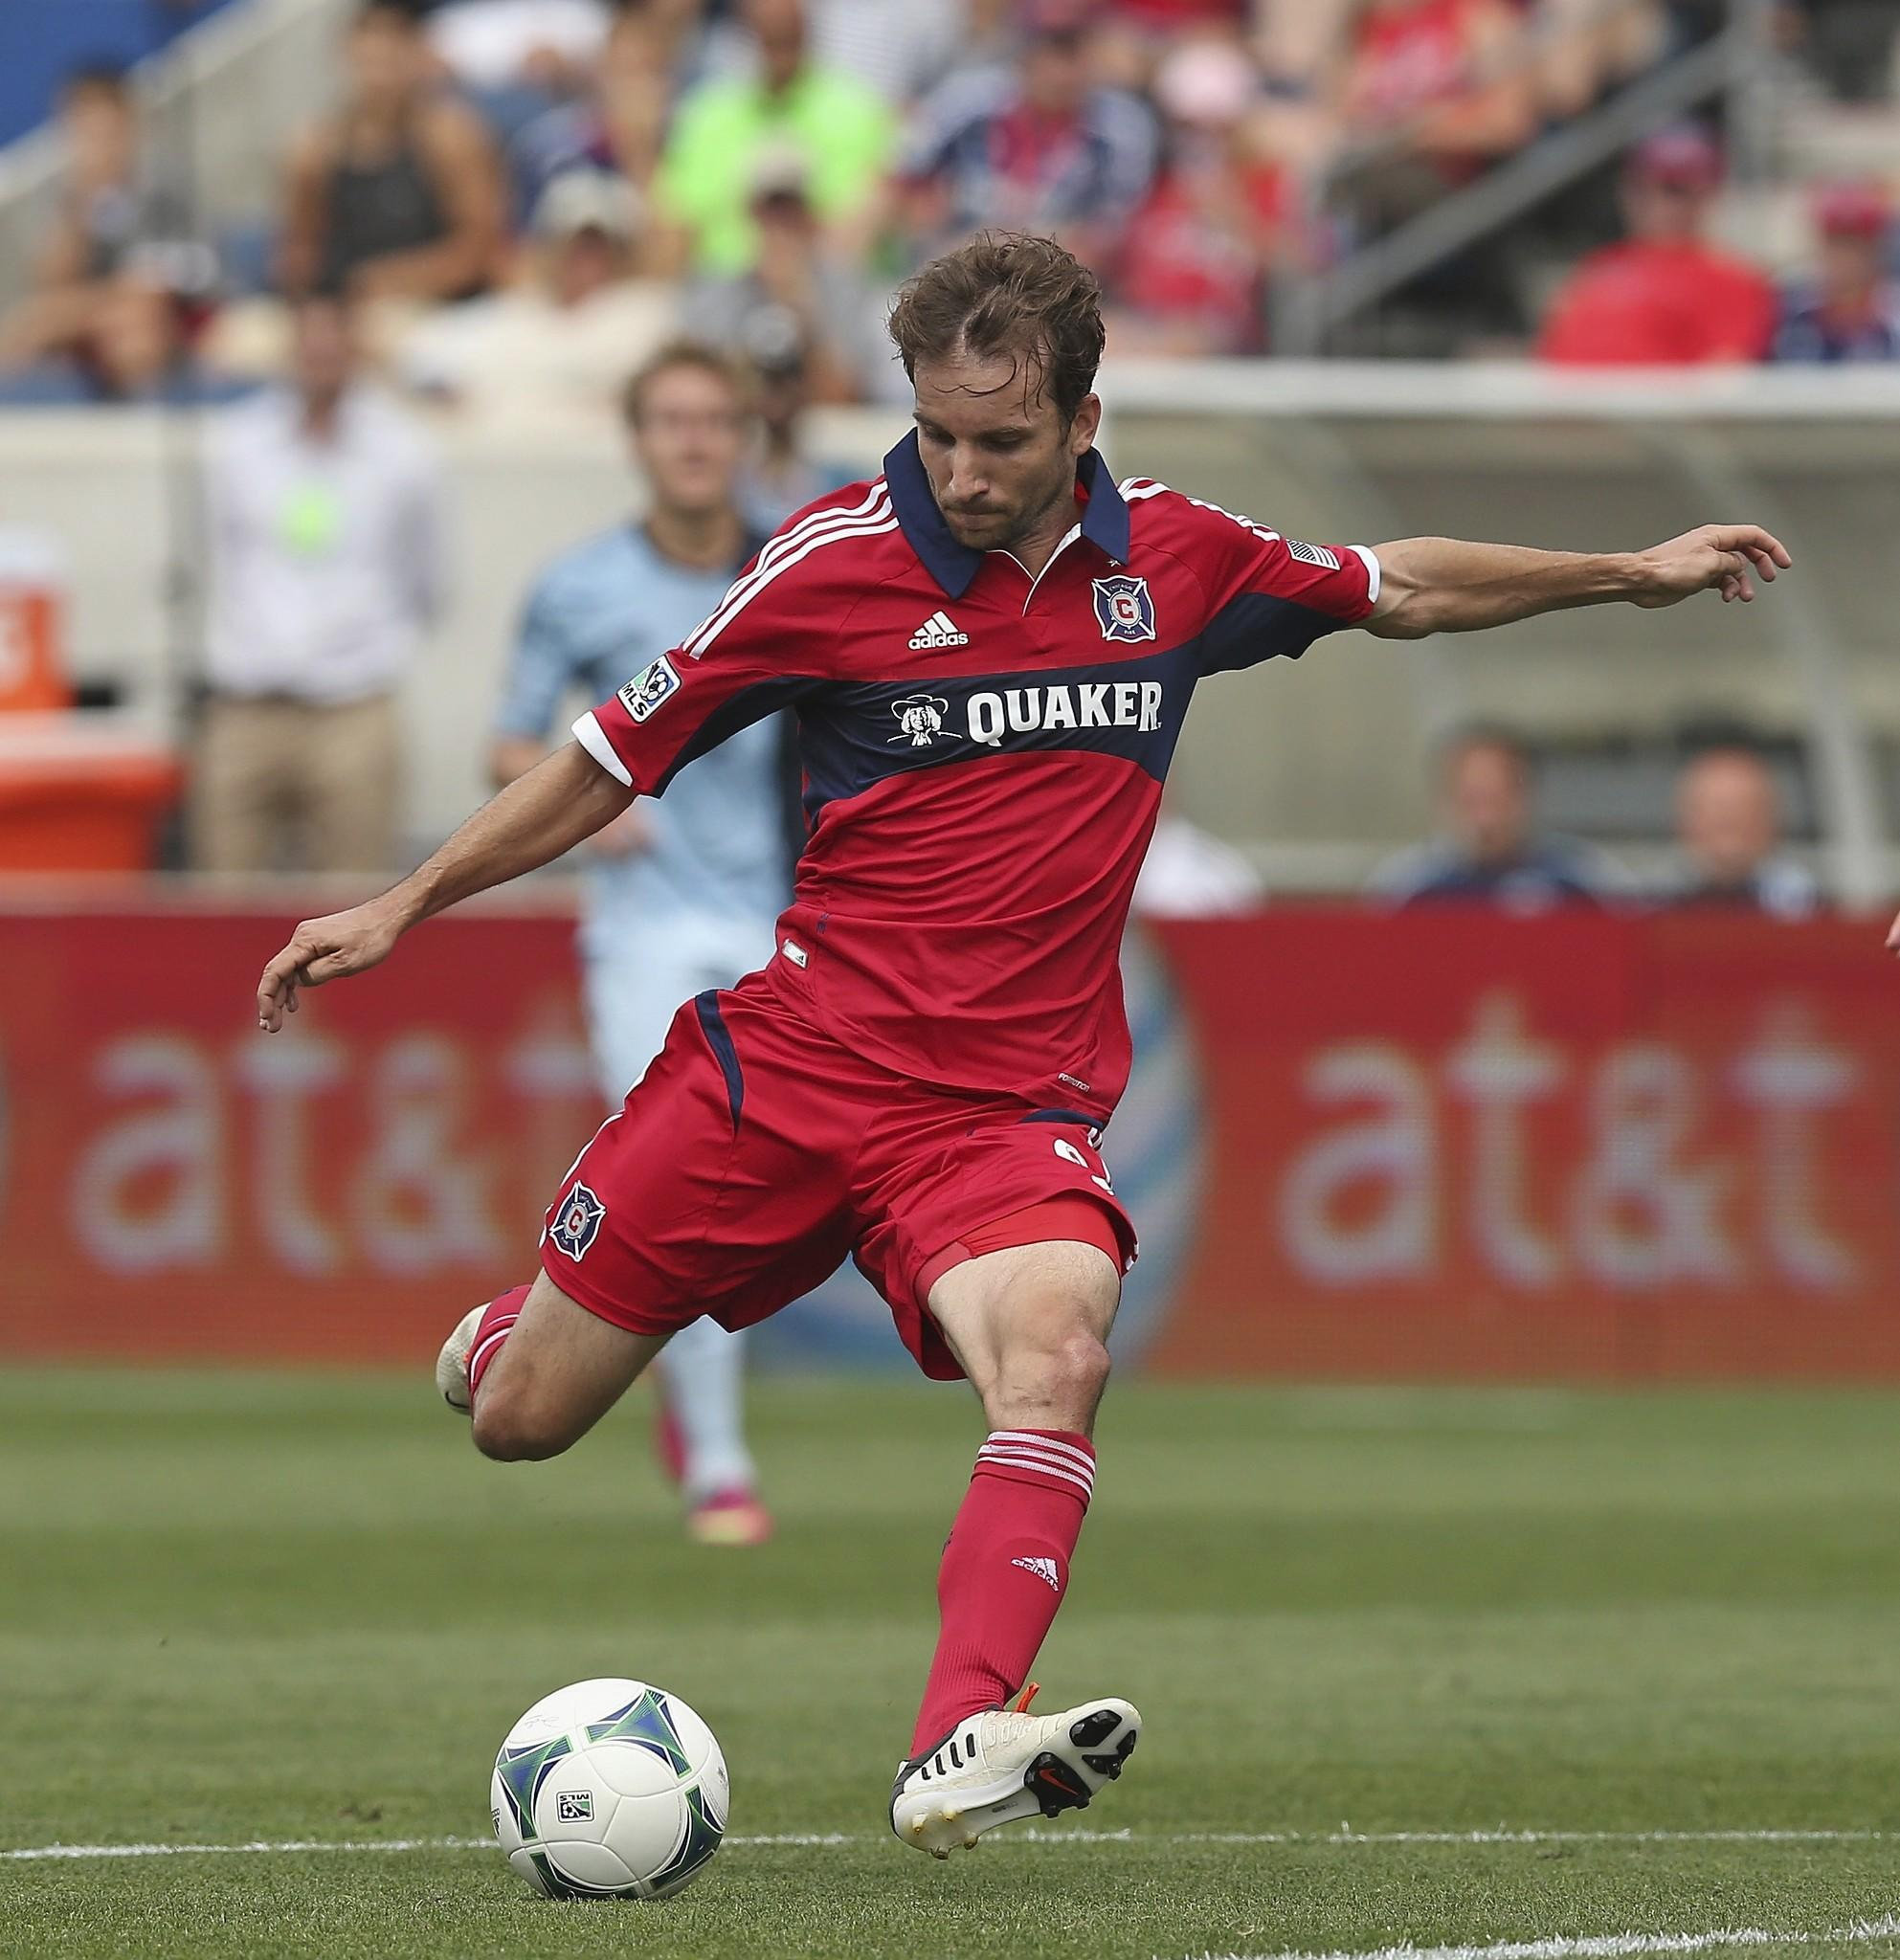 Mike Magee scores a first half goal against Sporting Kansas City.